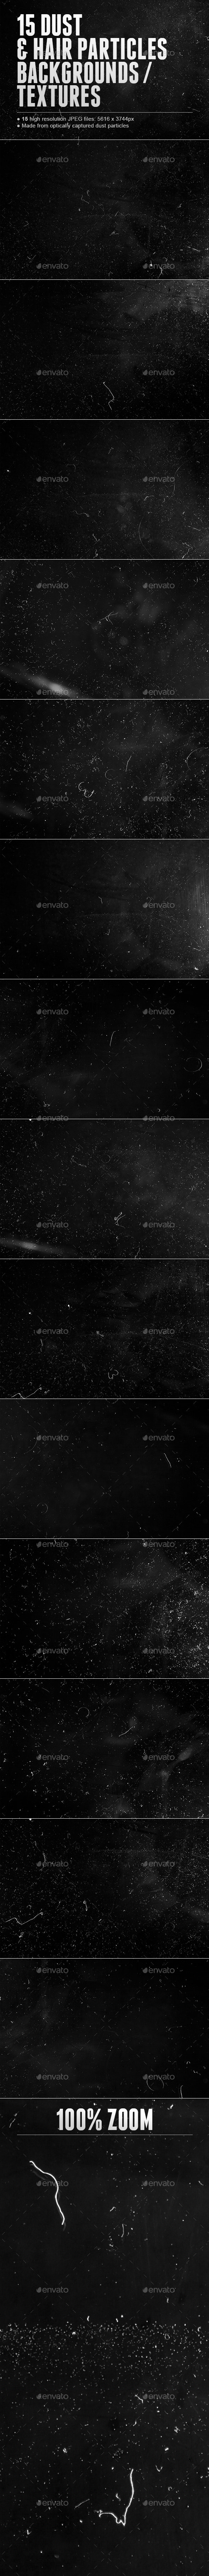 15 Dust and Hair Particles Backgrounds / Textures - Miscellaneous Textures